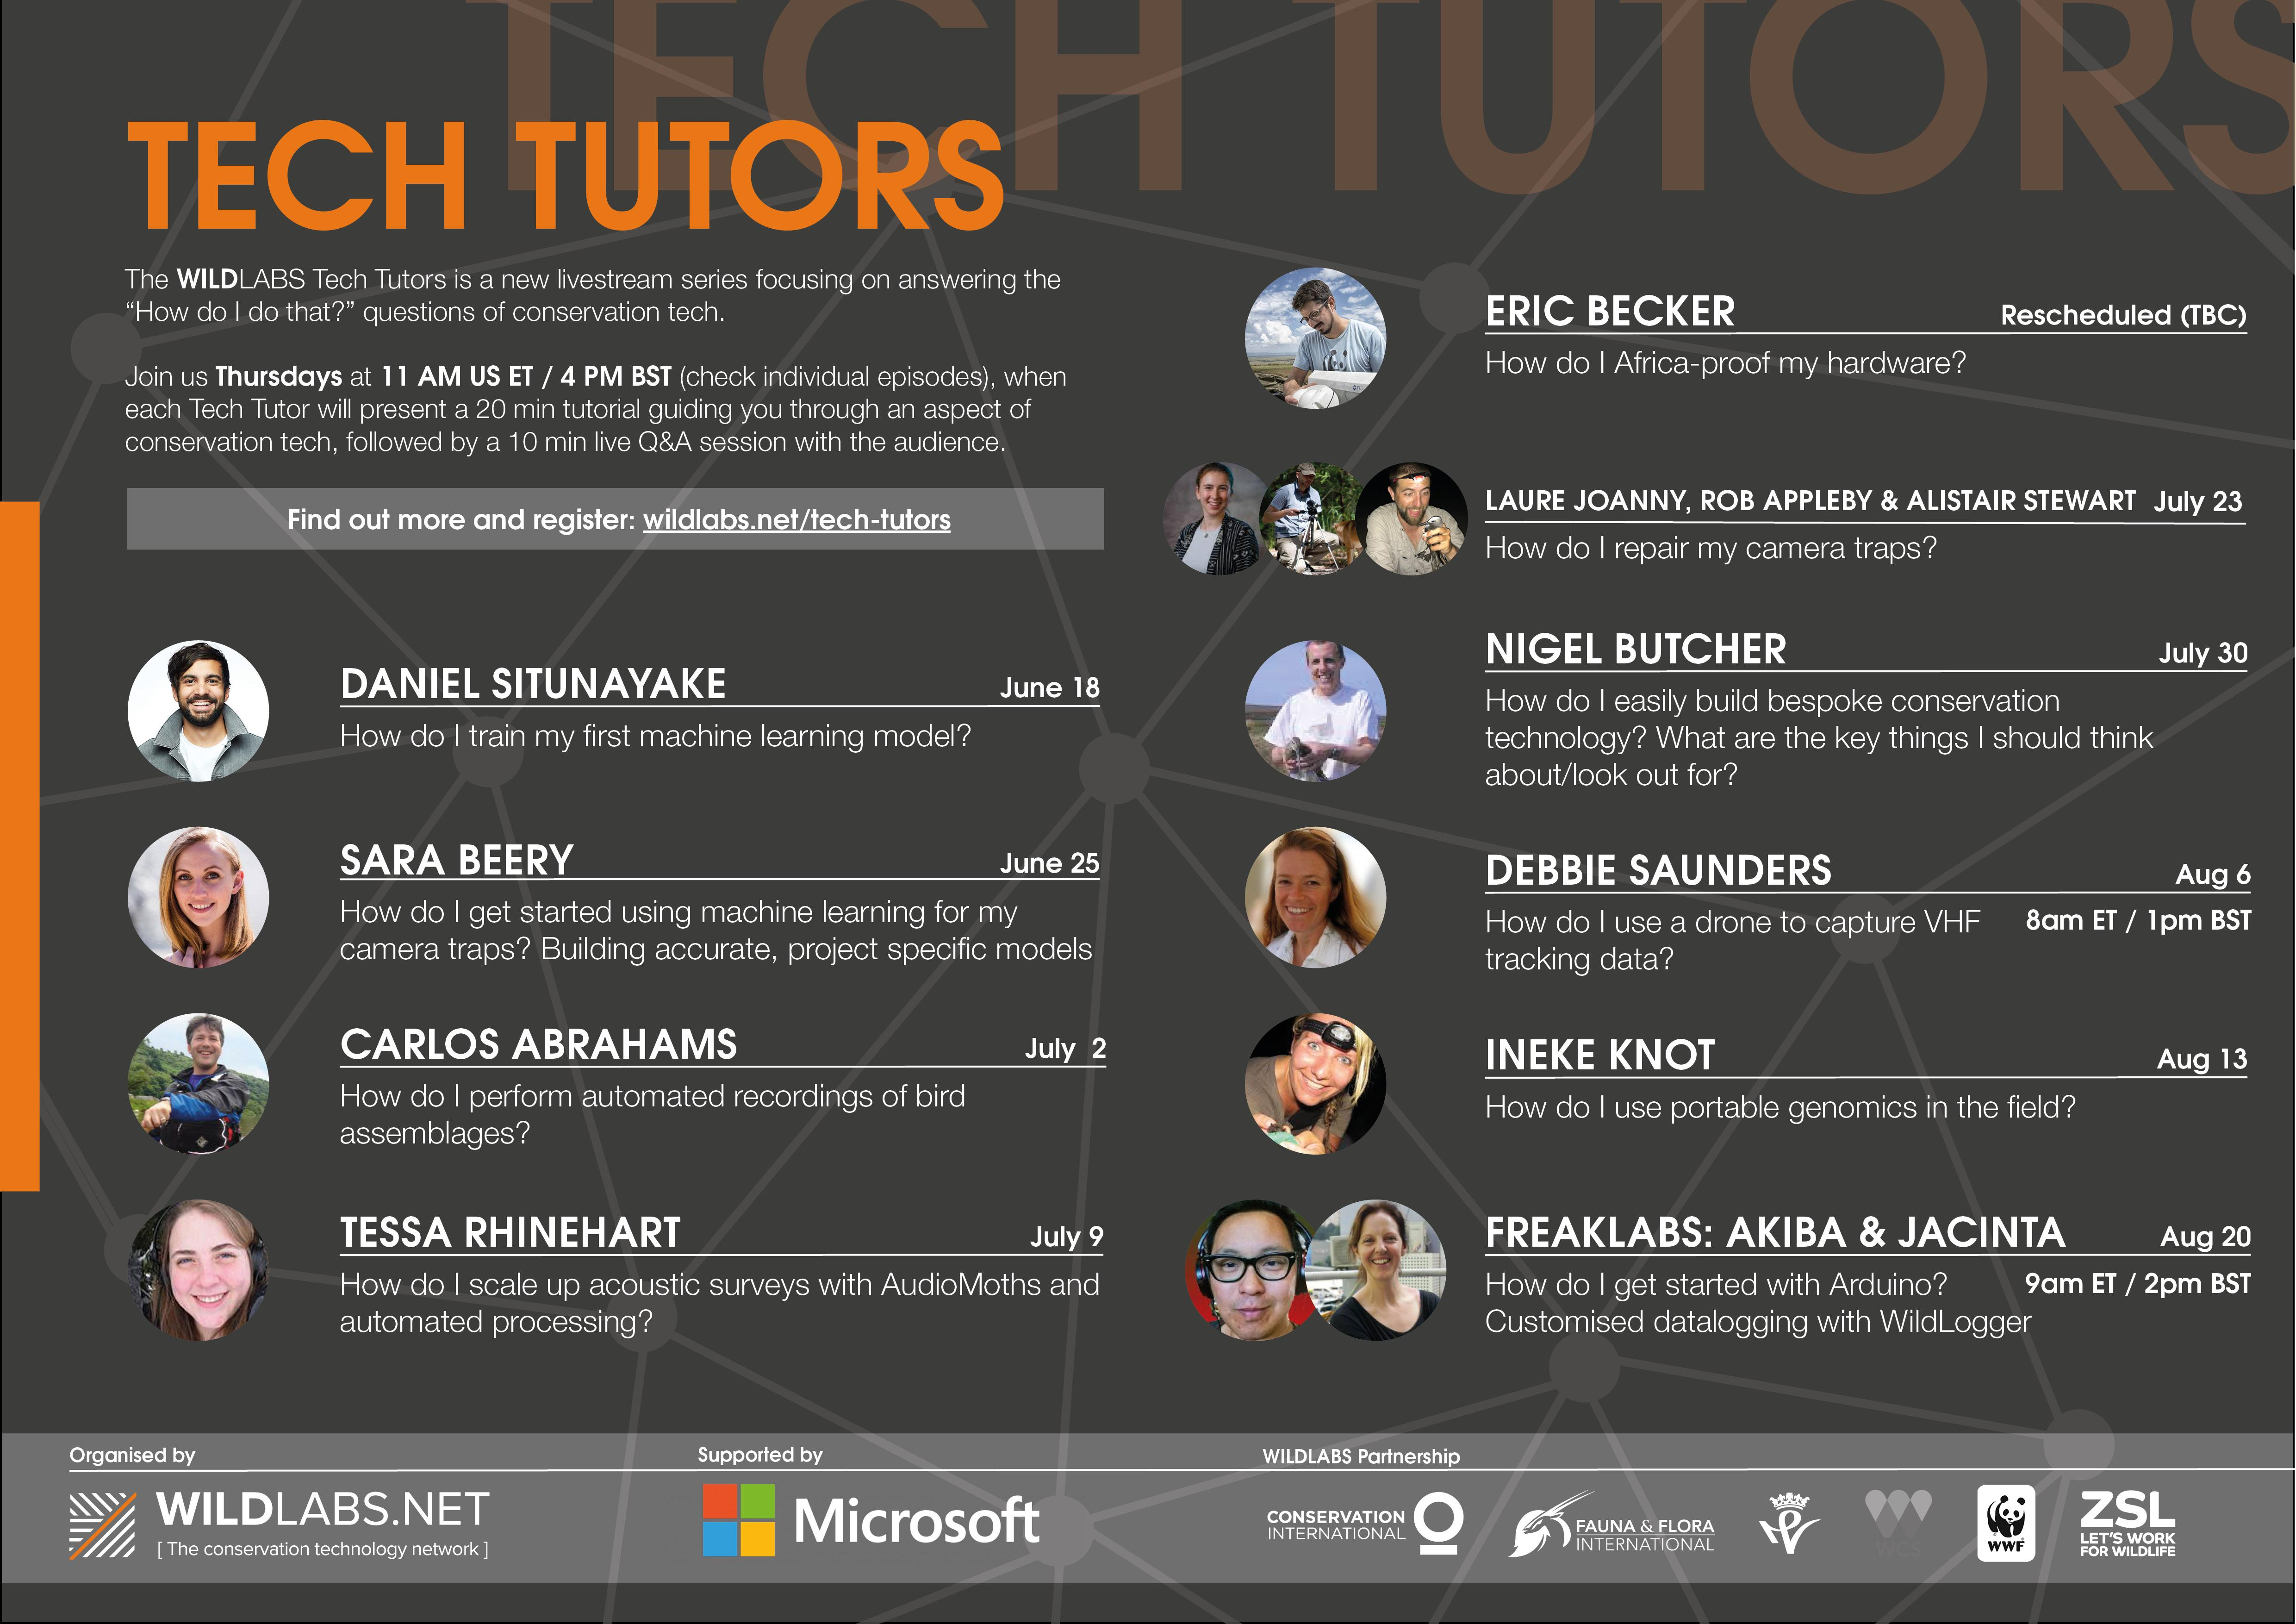 tech tutors season 1